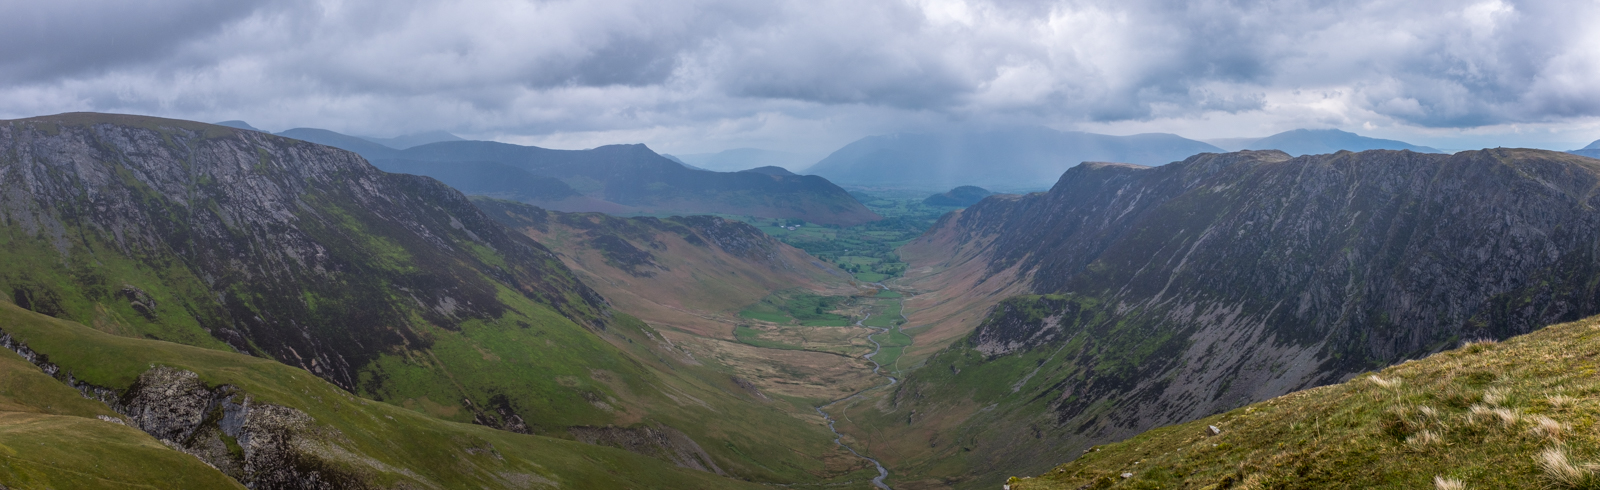 Newlands Valley from above Dalehead Crags